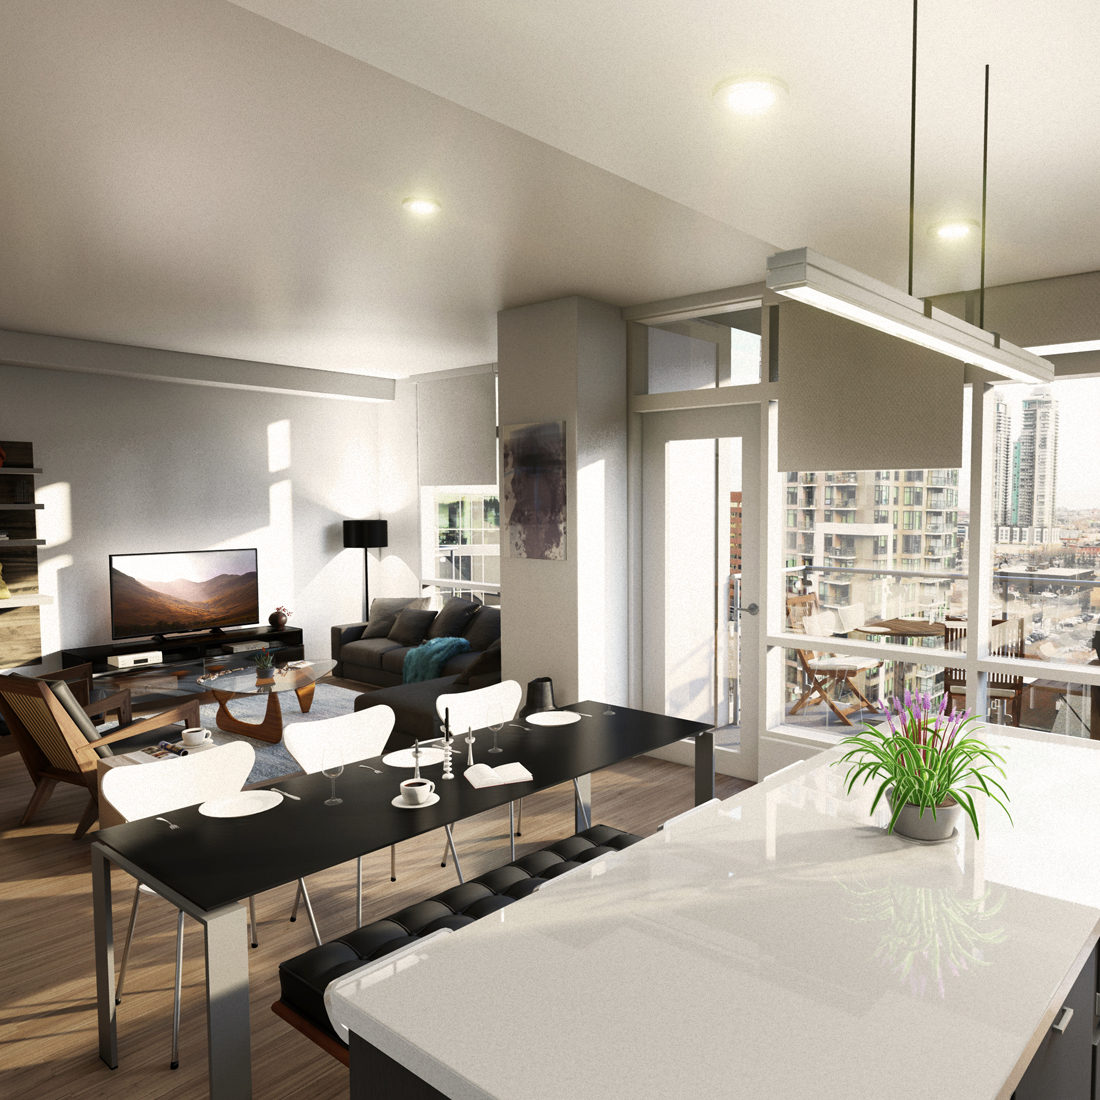 Looking Apartment For Rent: Calgary Apartments For Rent